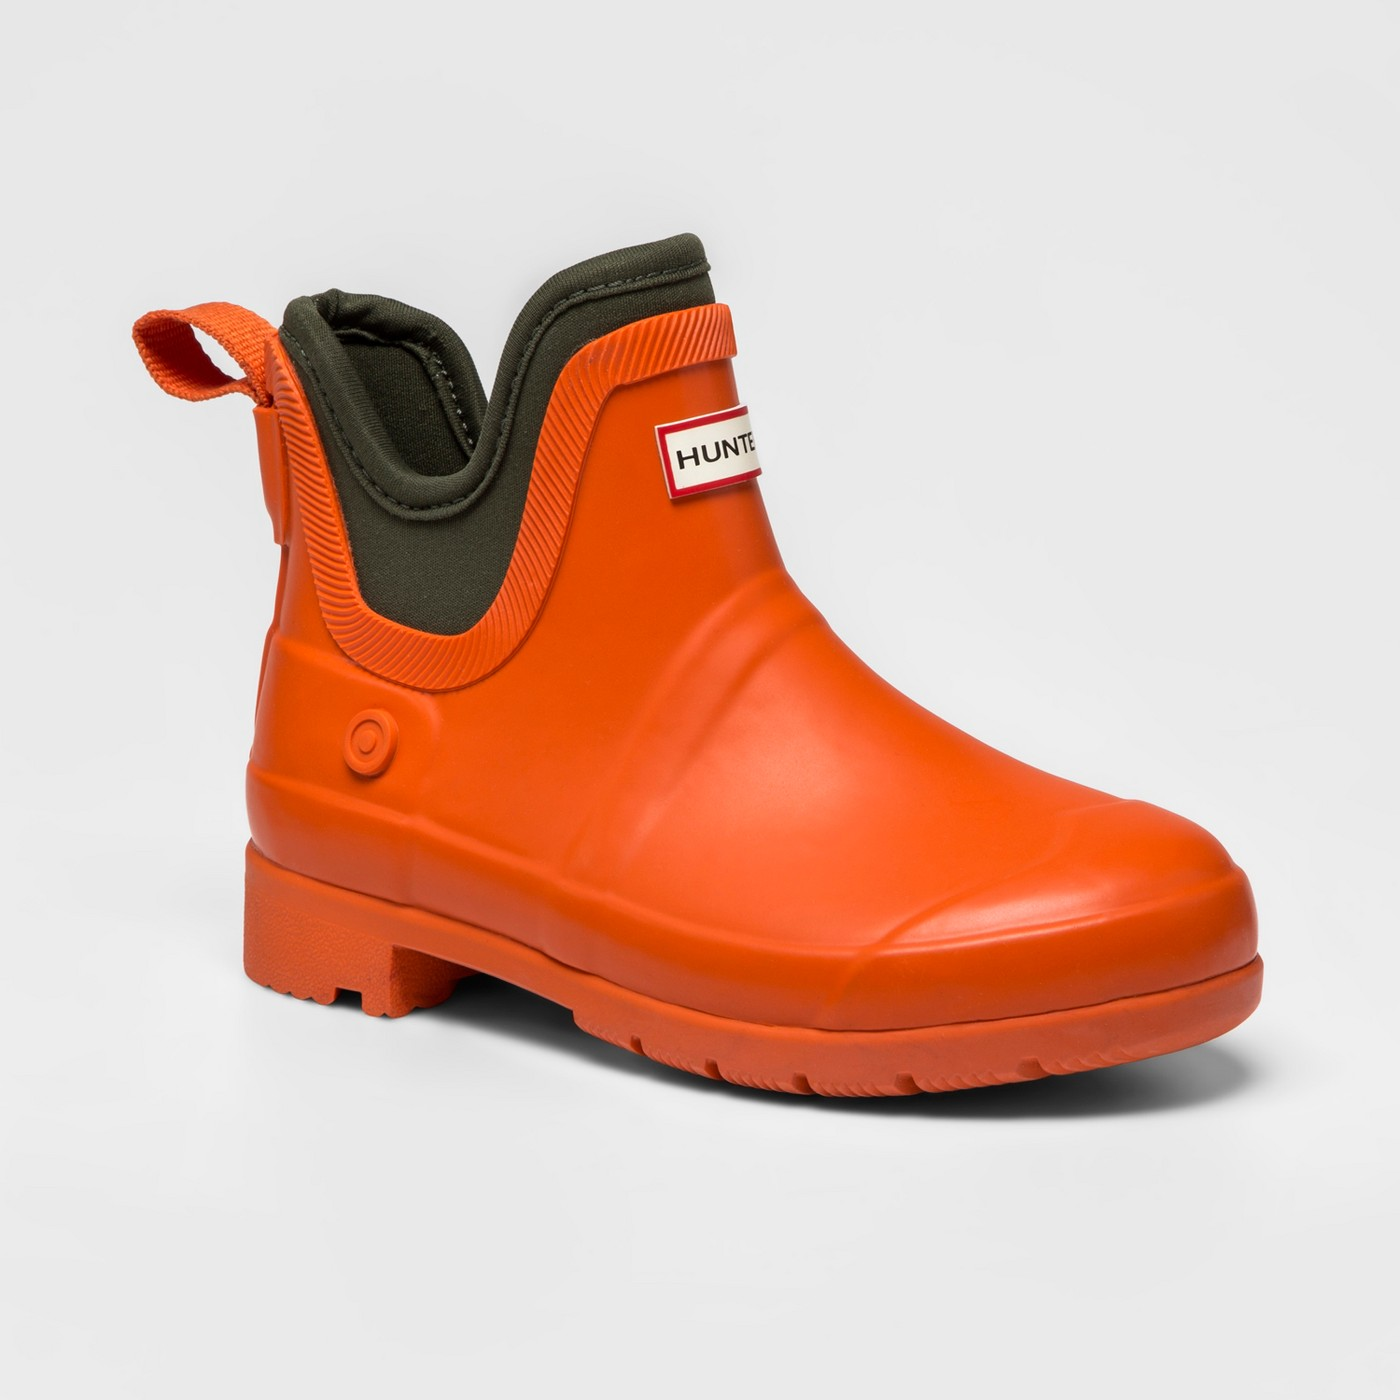 A first look at the Hunter Boots for Tar collection And they